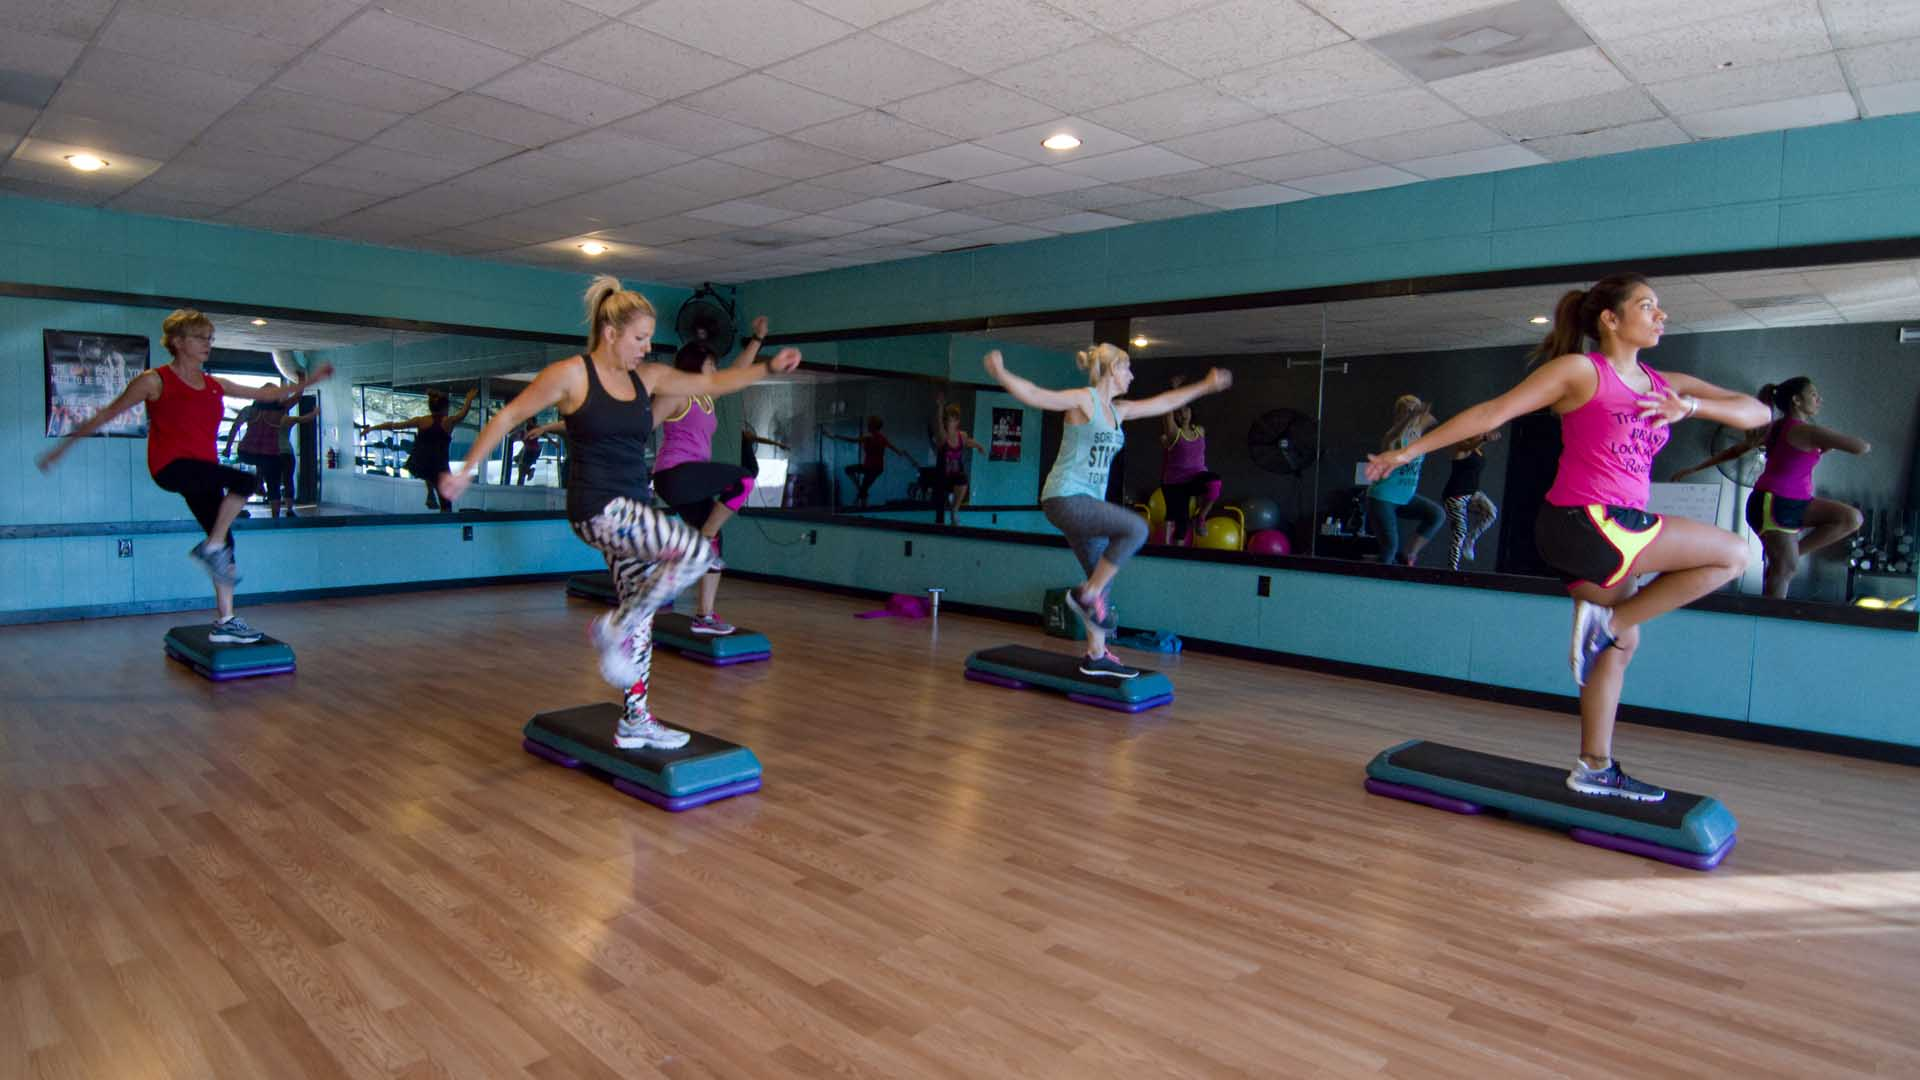 A group of women participating in Kathy's group fitness class, standing on one foot atop their aerobics steps while lifting the other leg with knee forward and arms lifted up to the side.